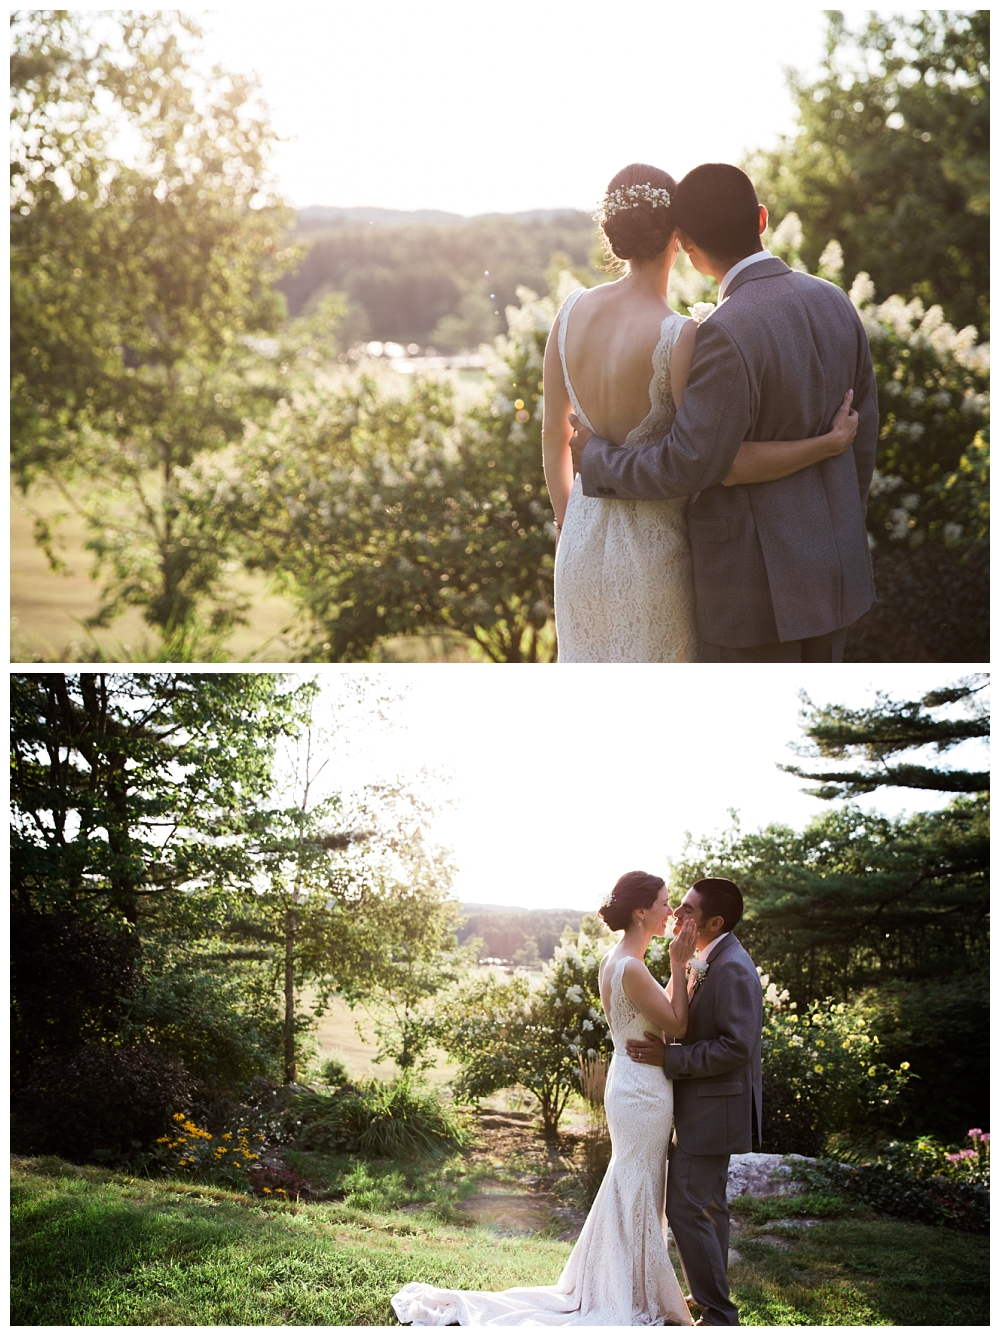 Maine Wedding Photographer Clark's Cove Farm & Inn Bride and Groom at Dusk